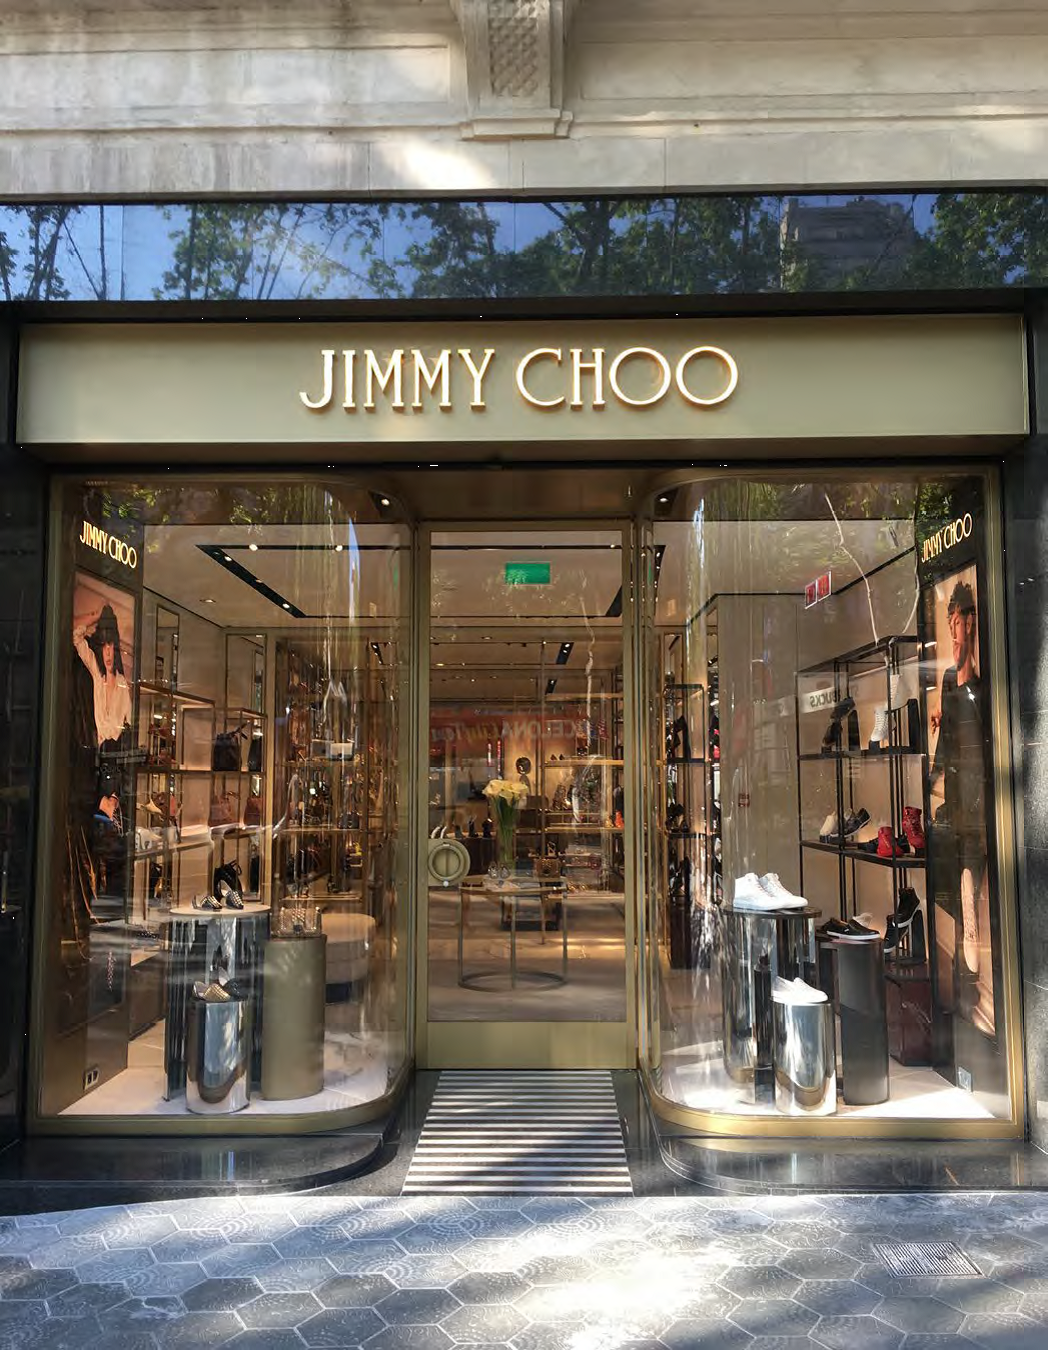 JIMMY CHOO Stores